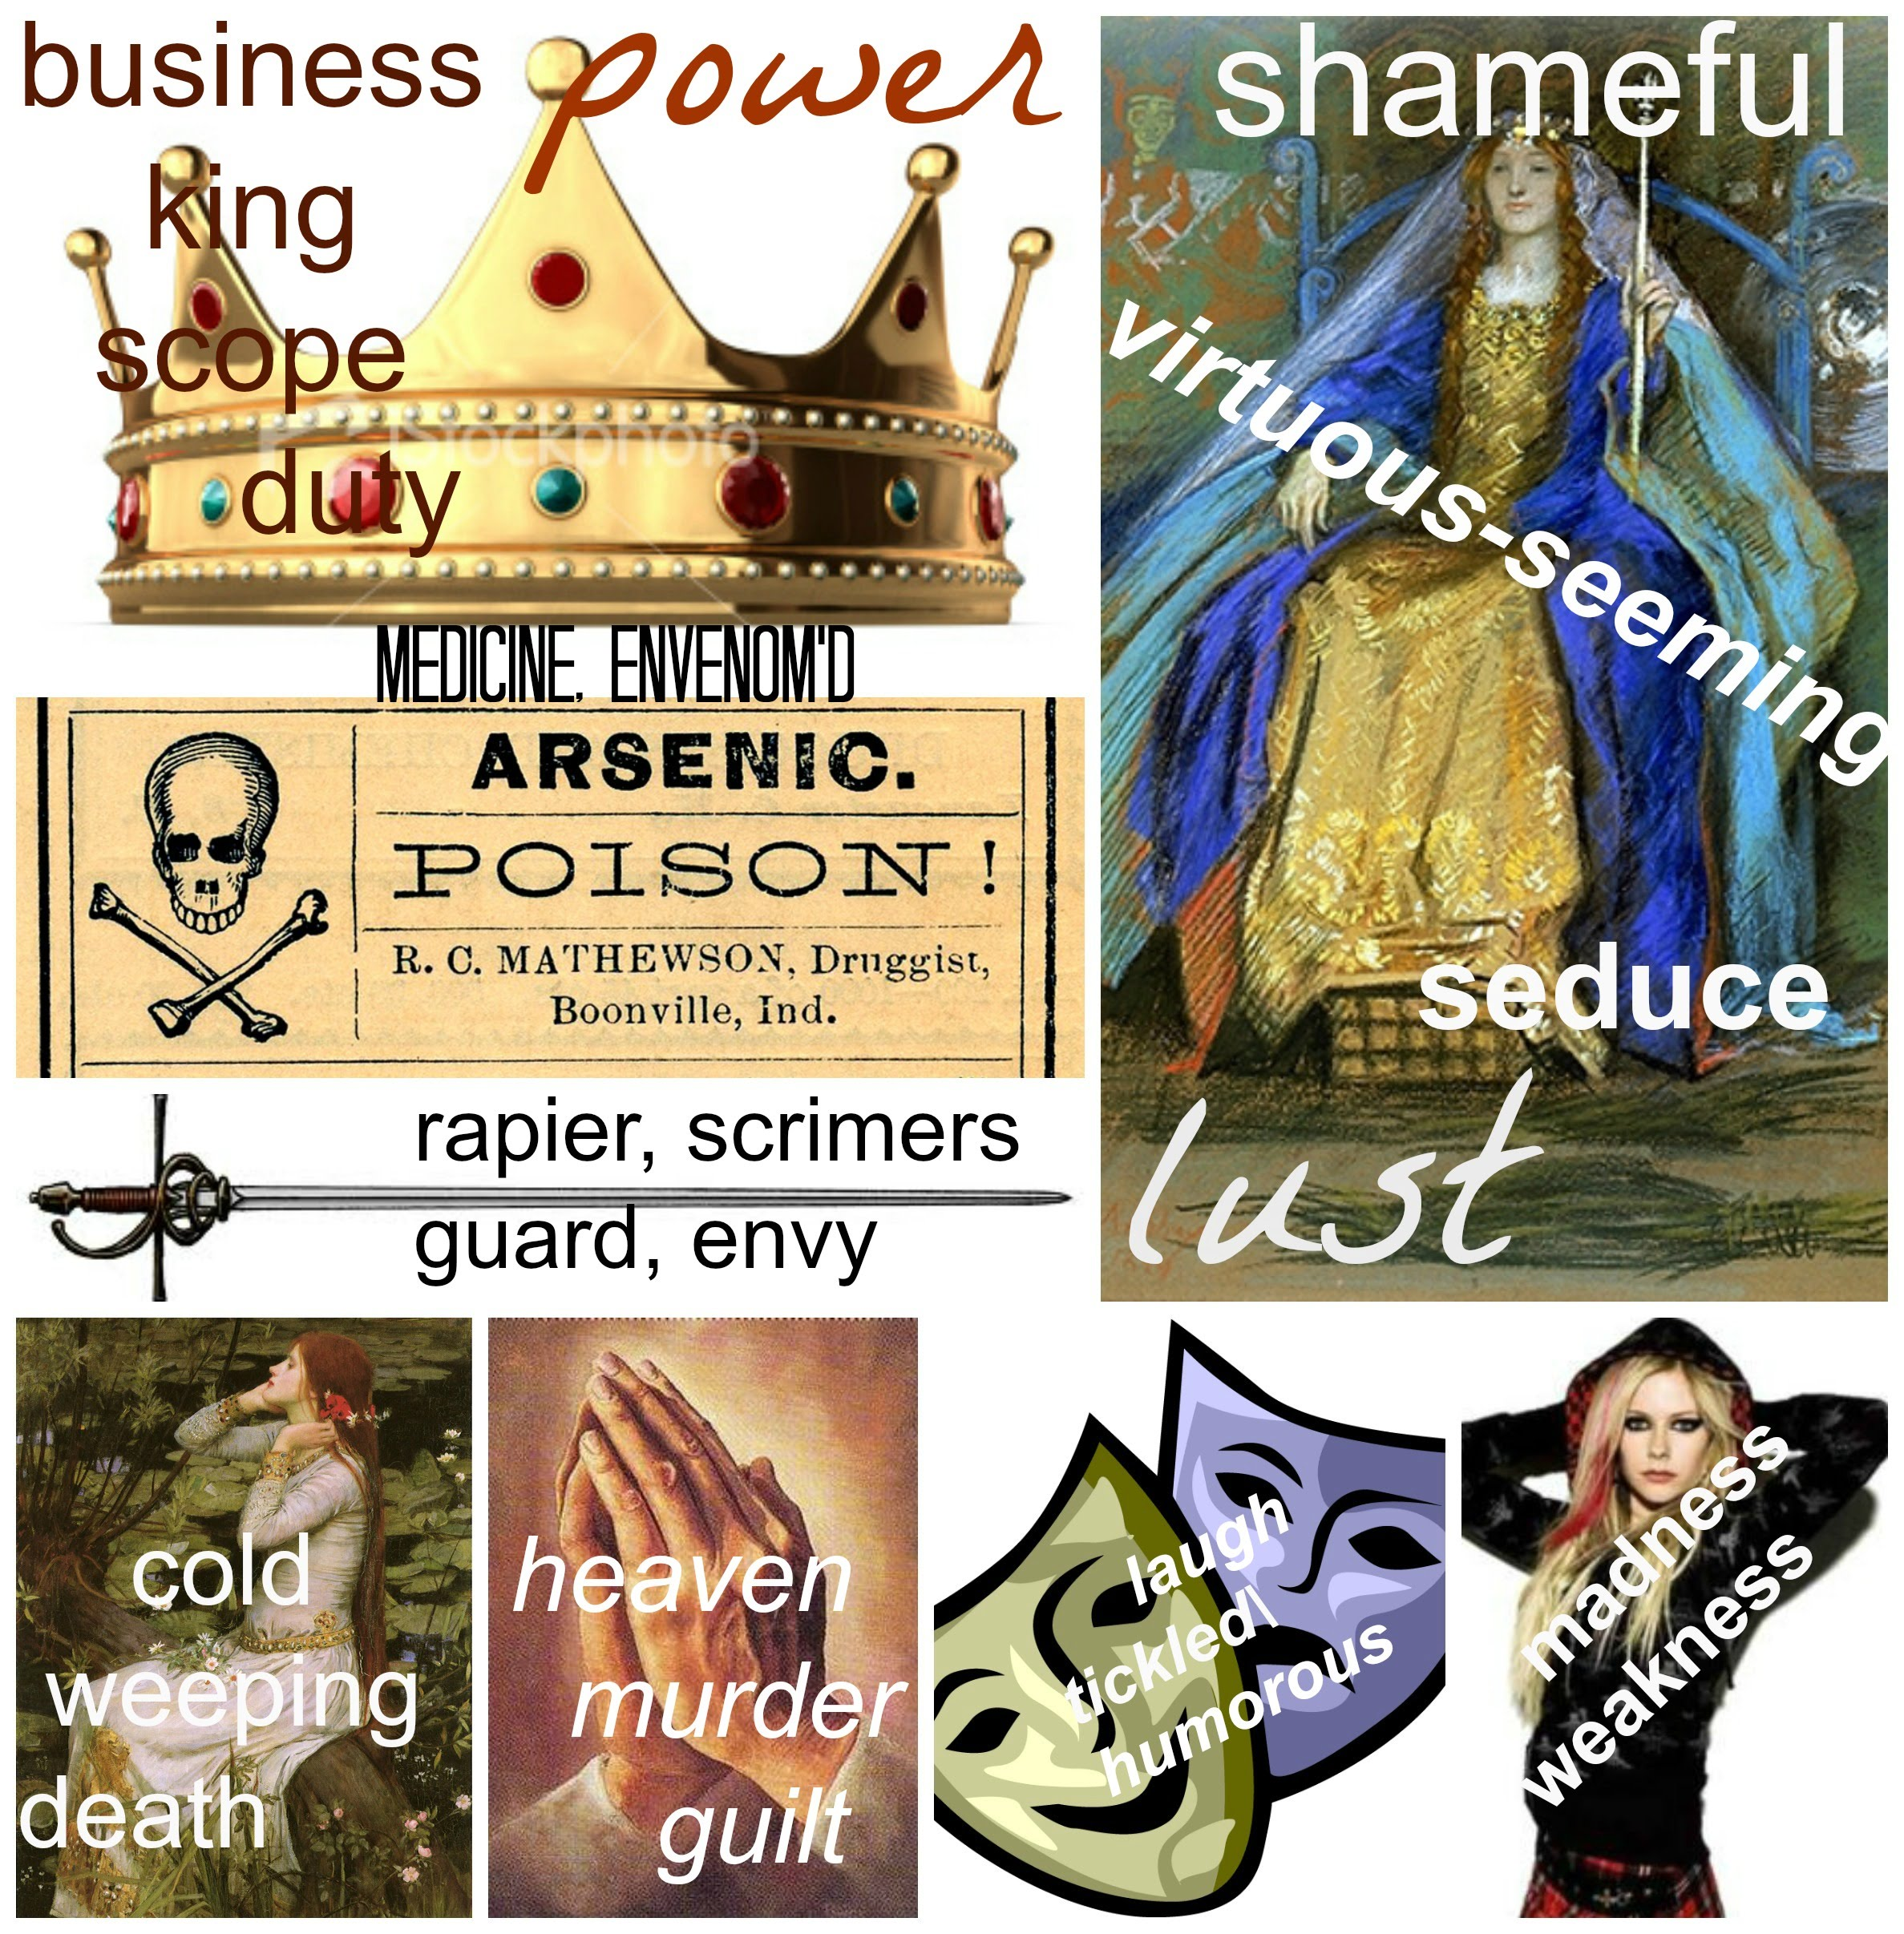 Diction shakespeares hamlet period 2 the collage displays the cycle of events occurring throughout the play by depicting symbols and motifs as well as some choice words from a relevant passage biocorpaavc